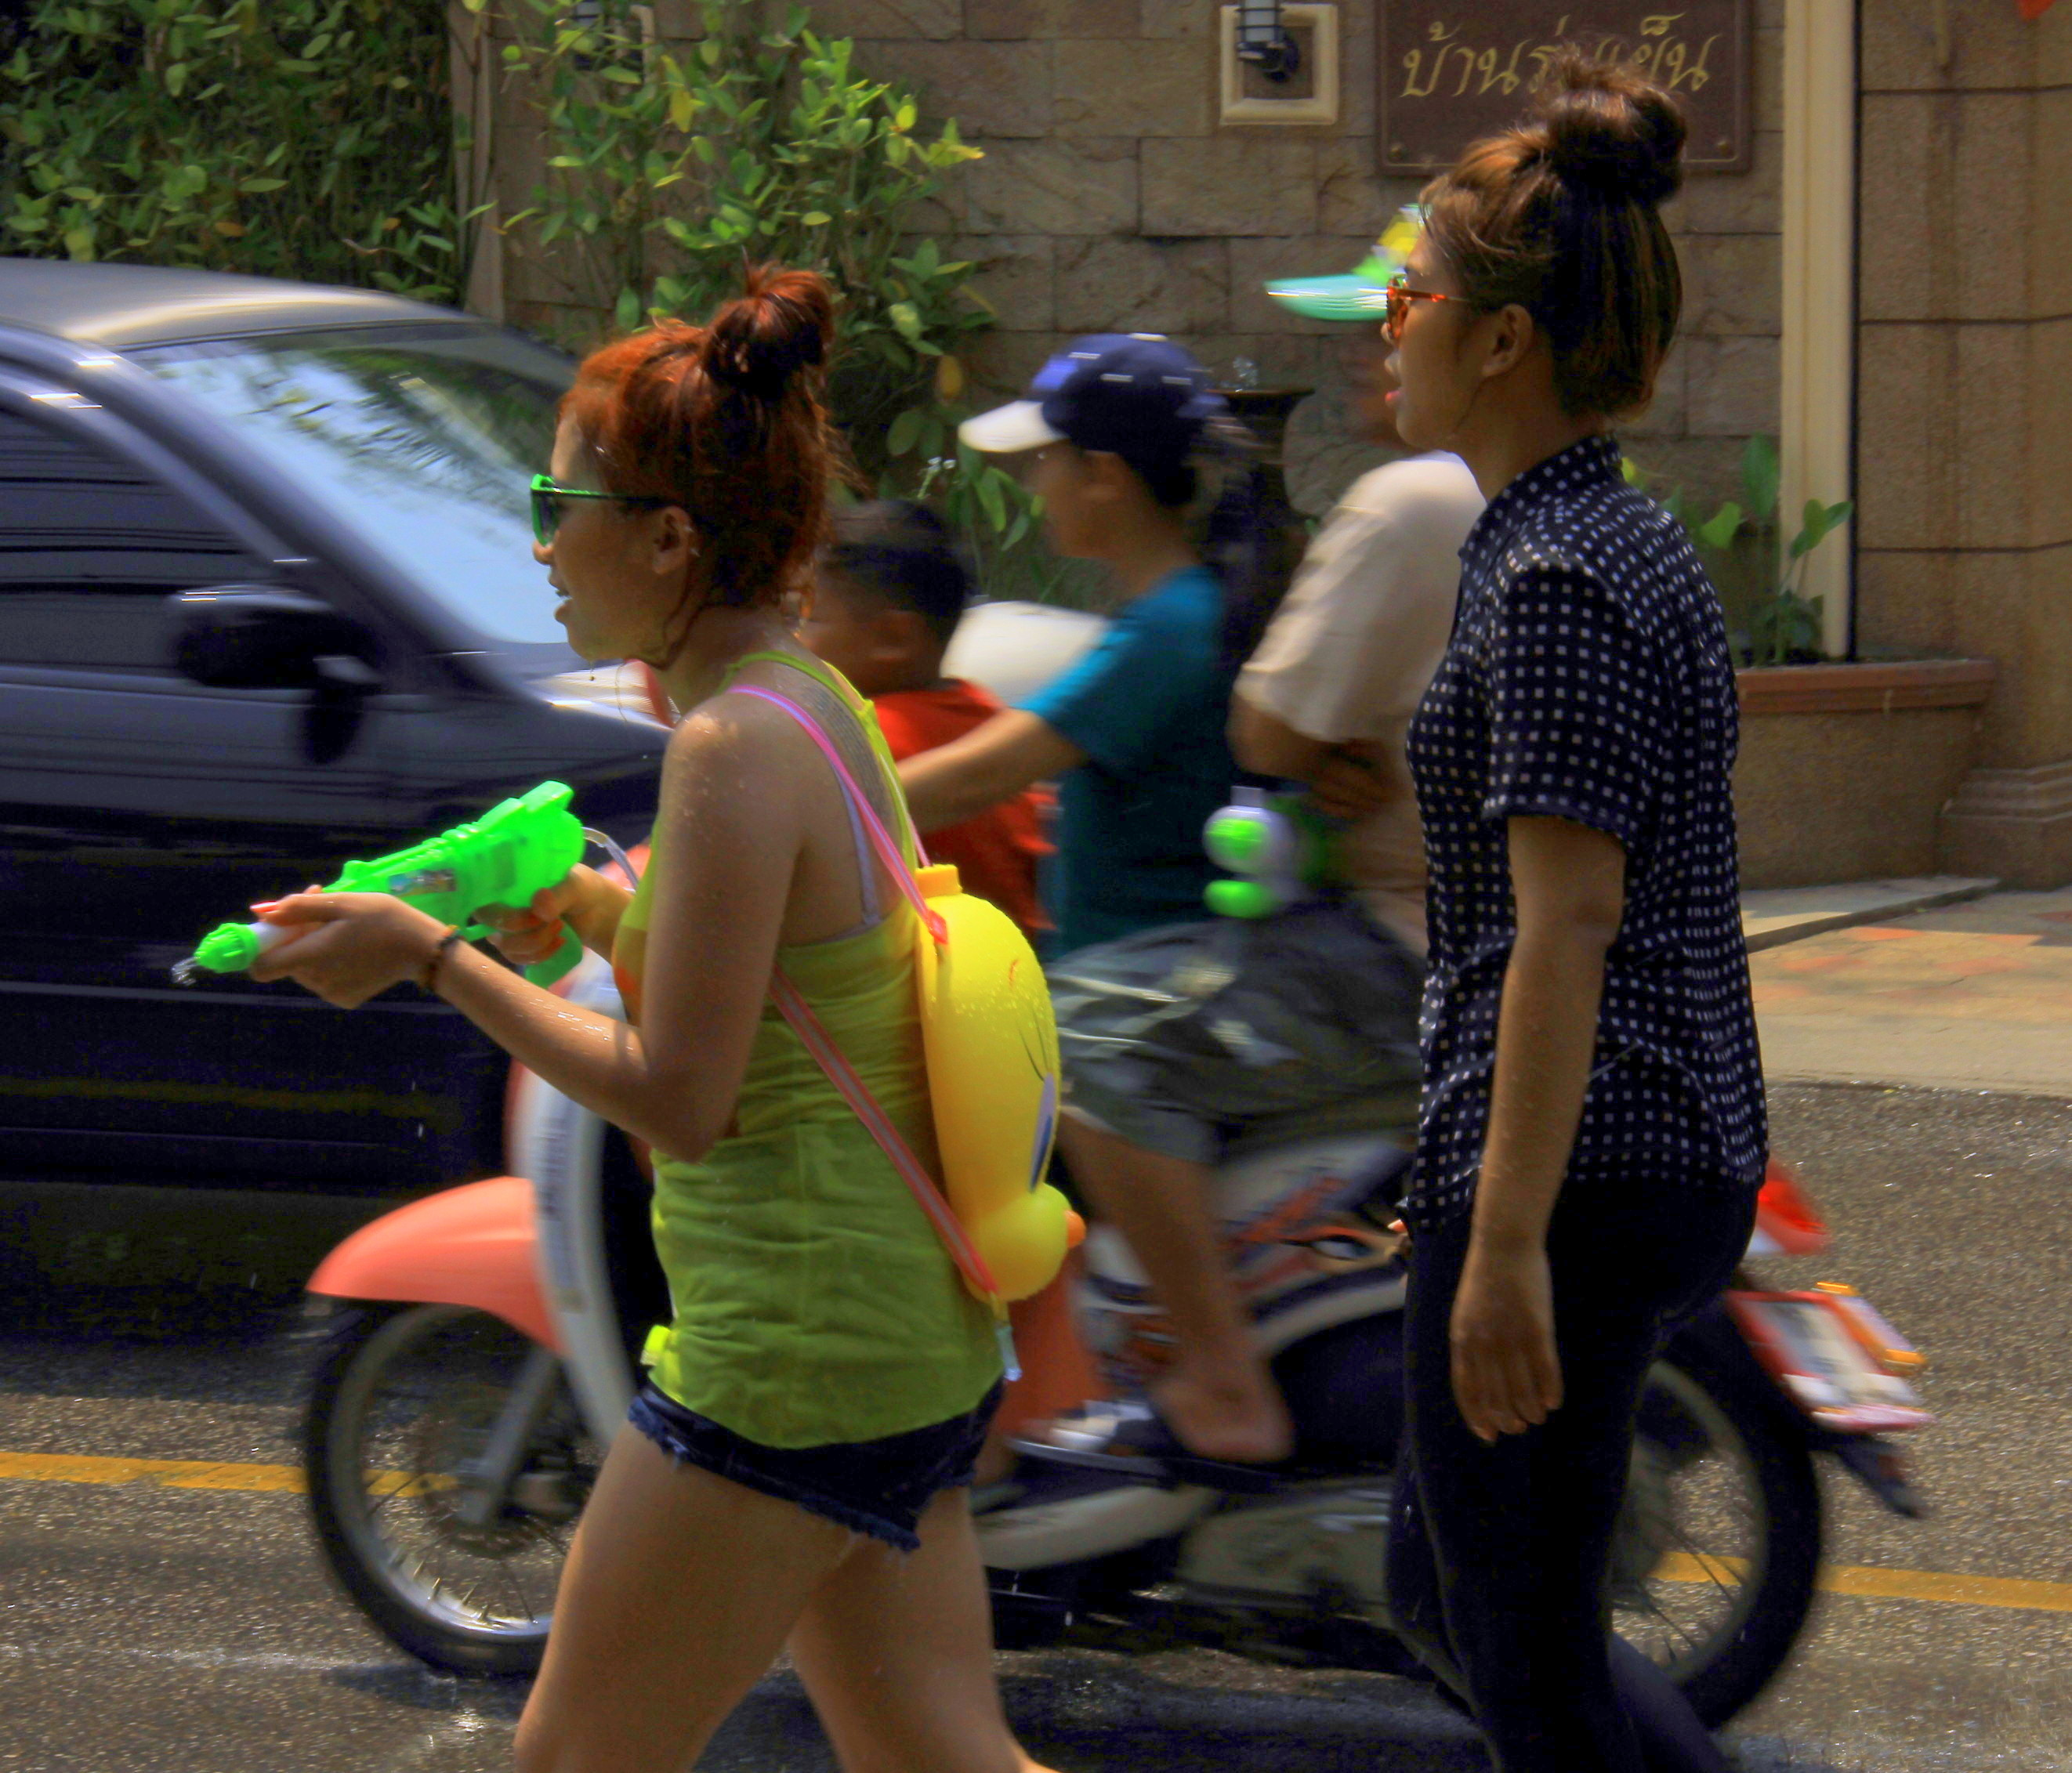 Songkran festival is a water fight